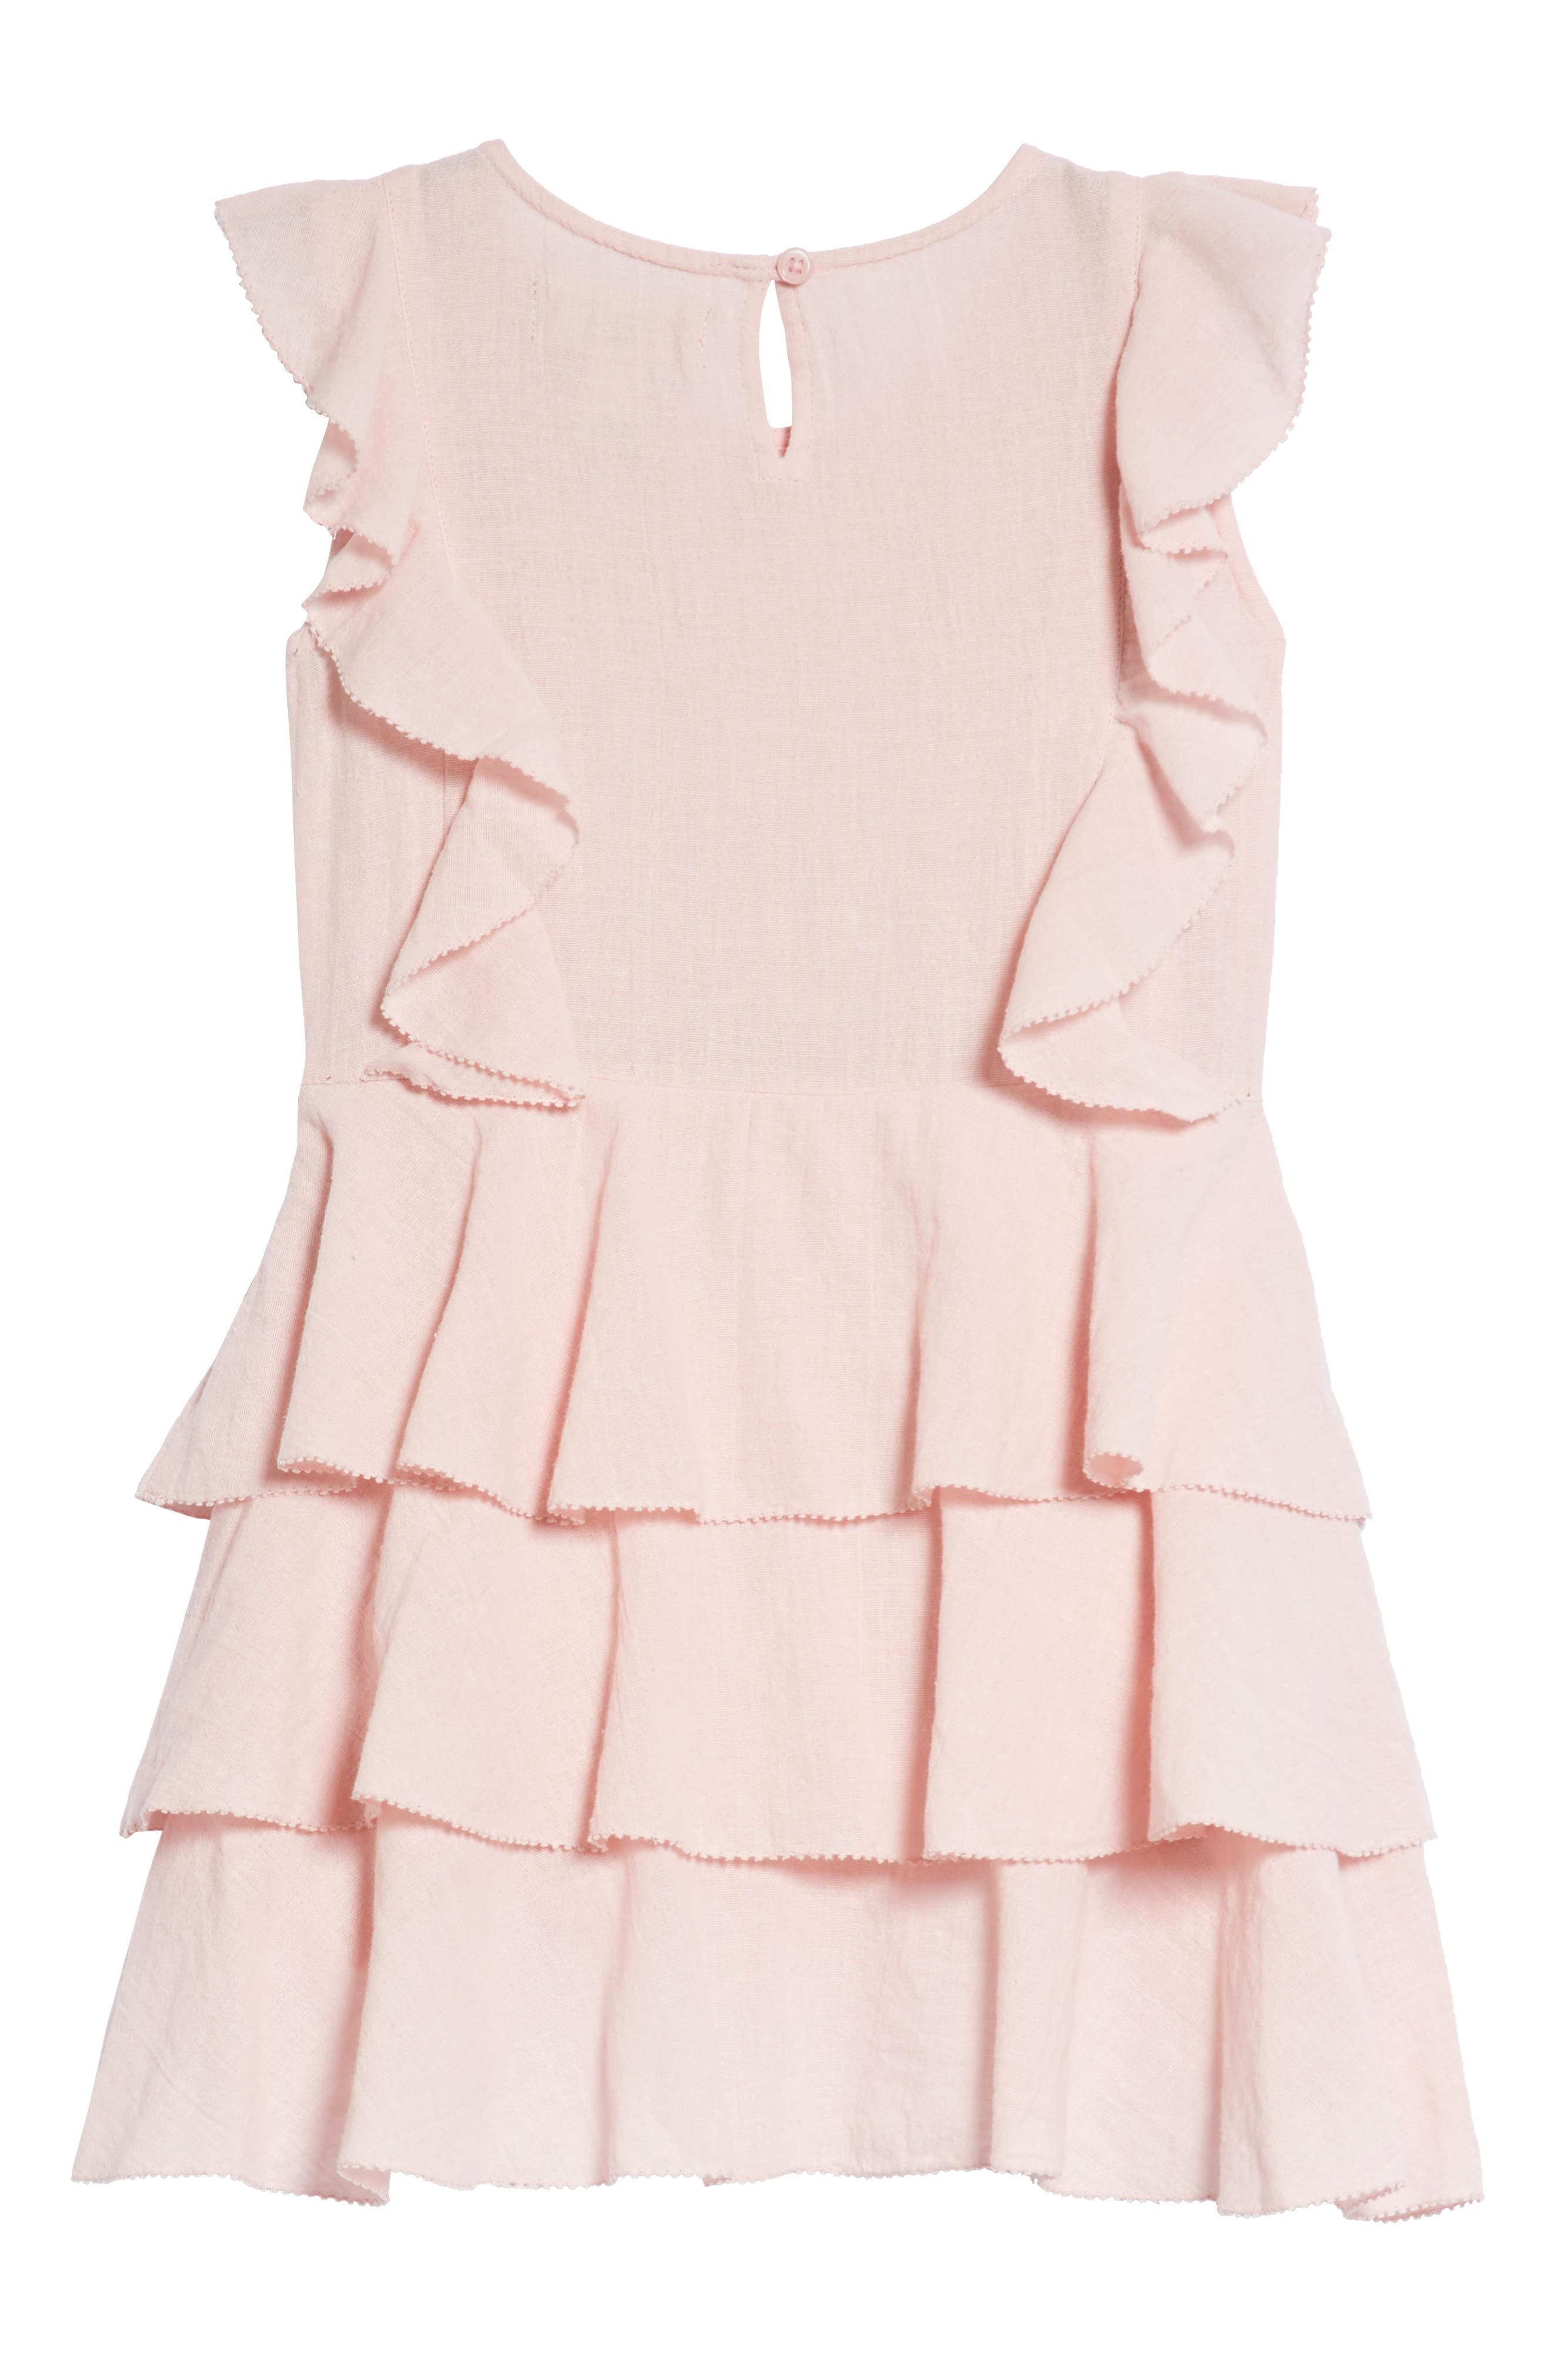 Madeline Tiered Dress,                             Alternate thumbnail 2, color,                             Blush